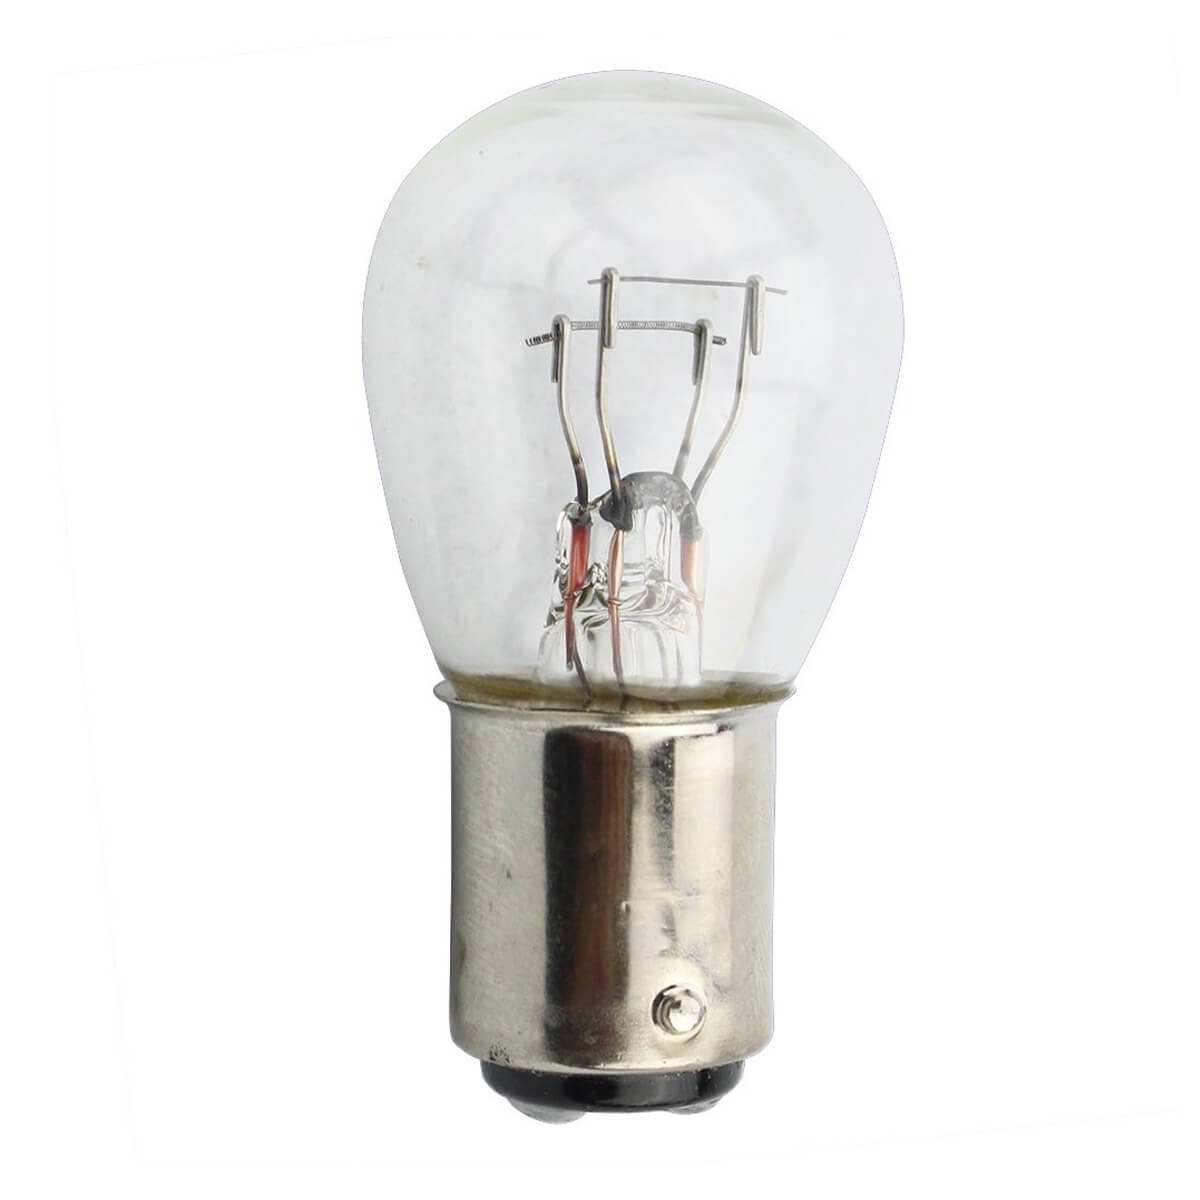 CHRYSLER VOYAGER IV Brake Light Bulb